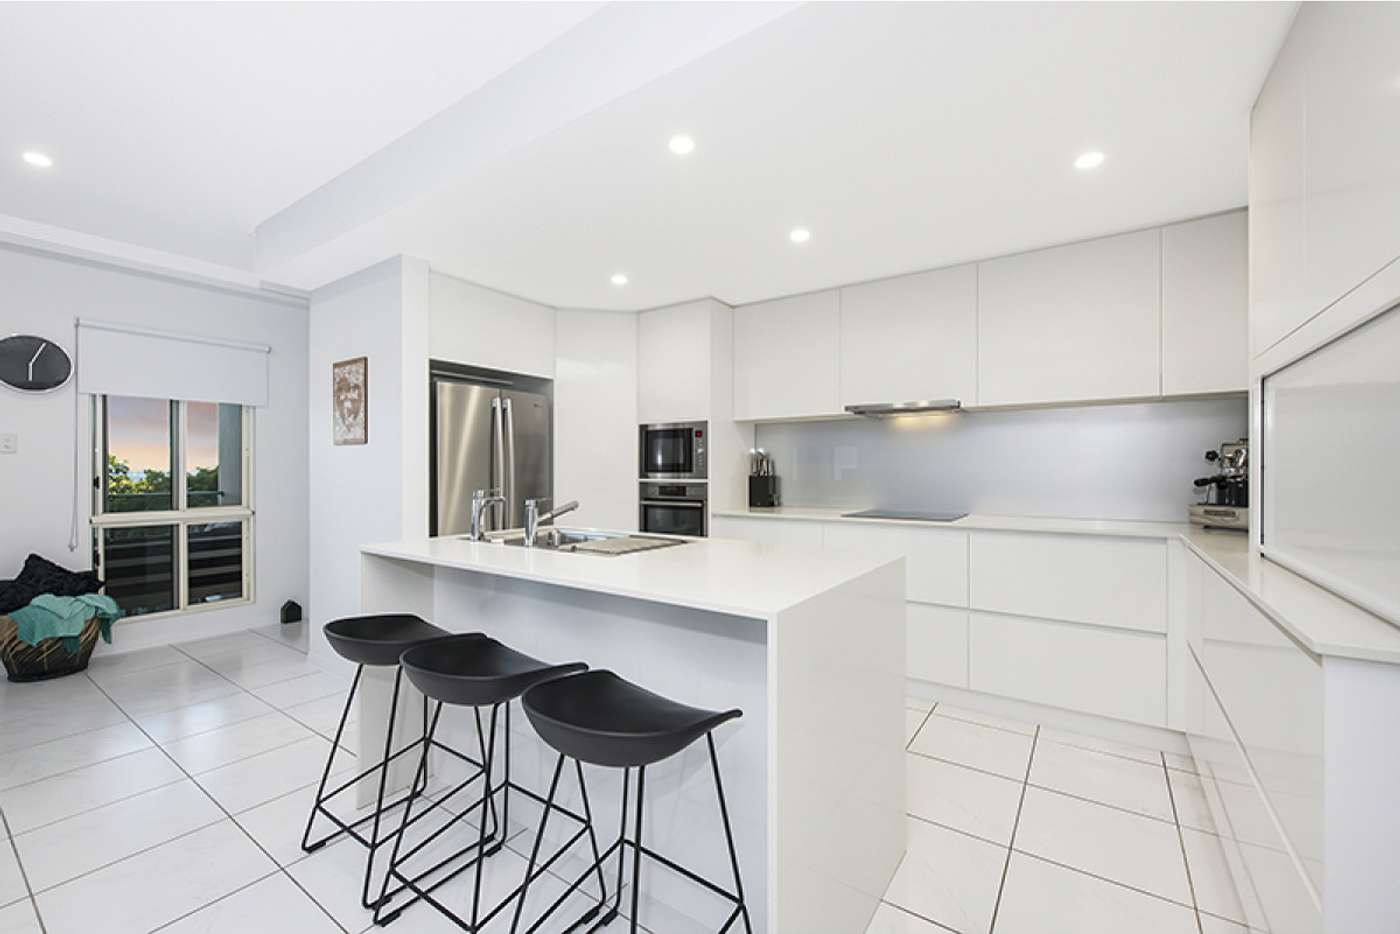 Fifth view of Homely apartment listing, 6/61 The Strand, North Ward QLD 4810